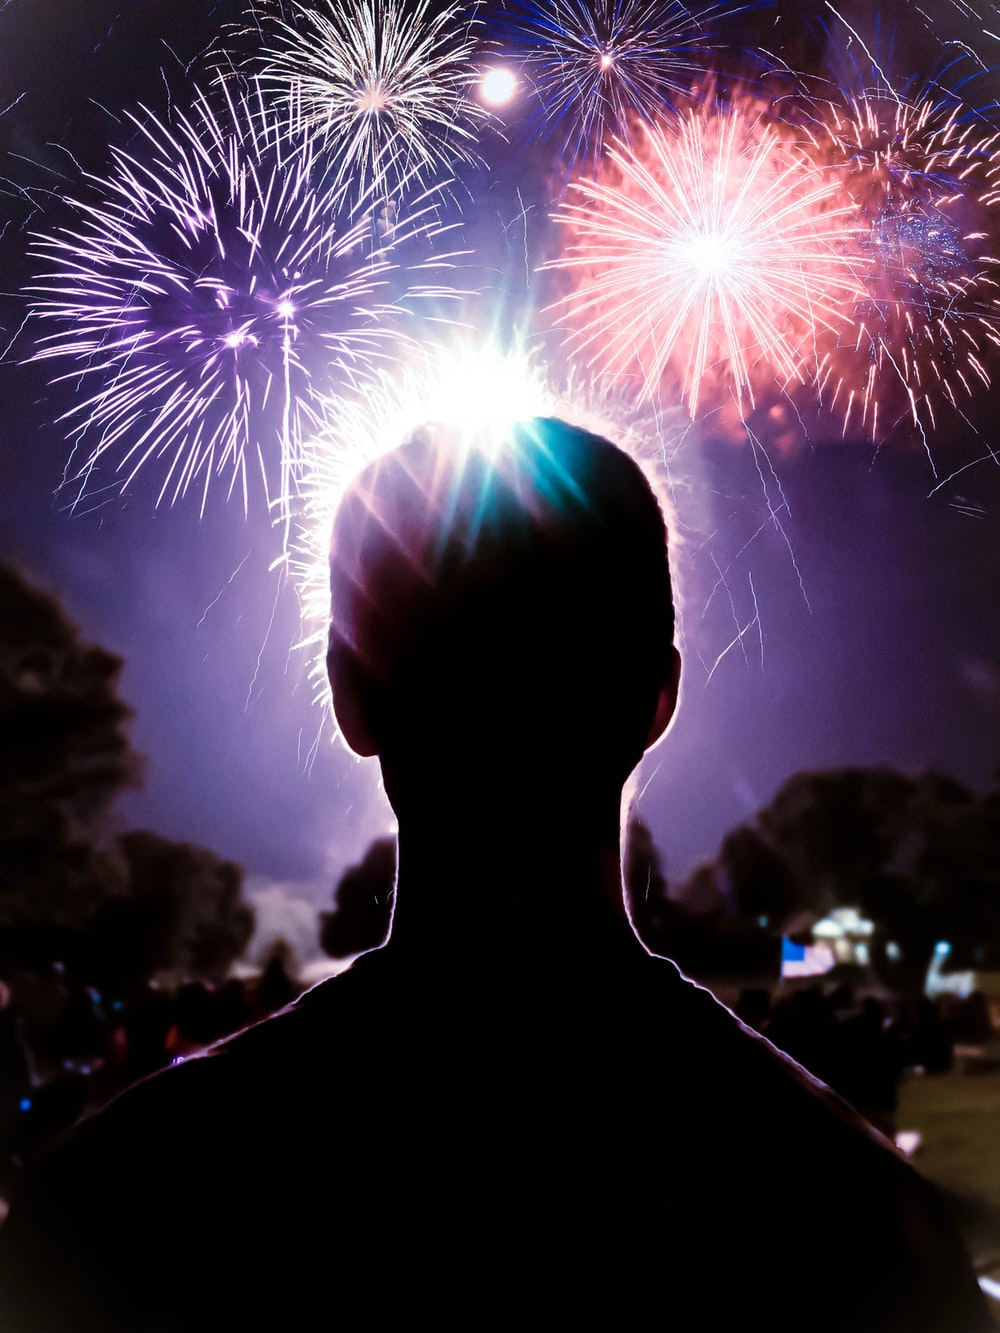 person looking at fireworks display